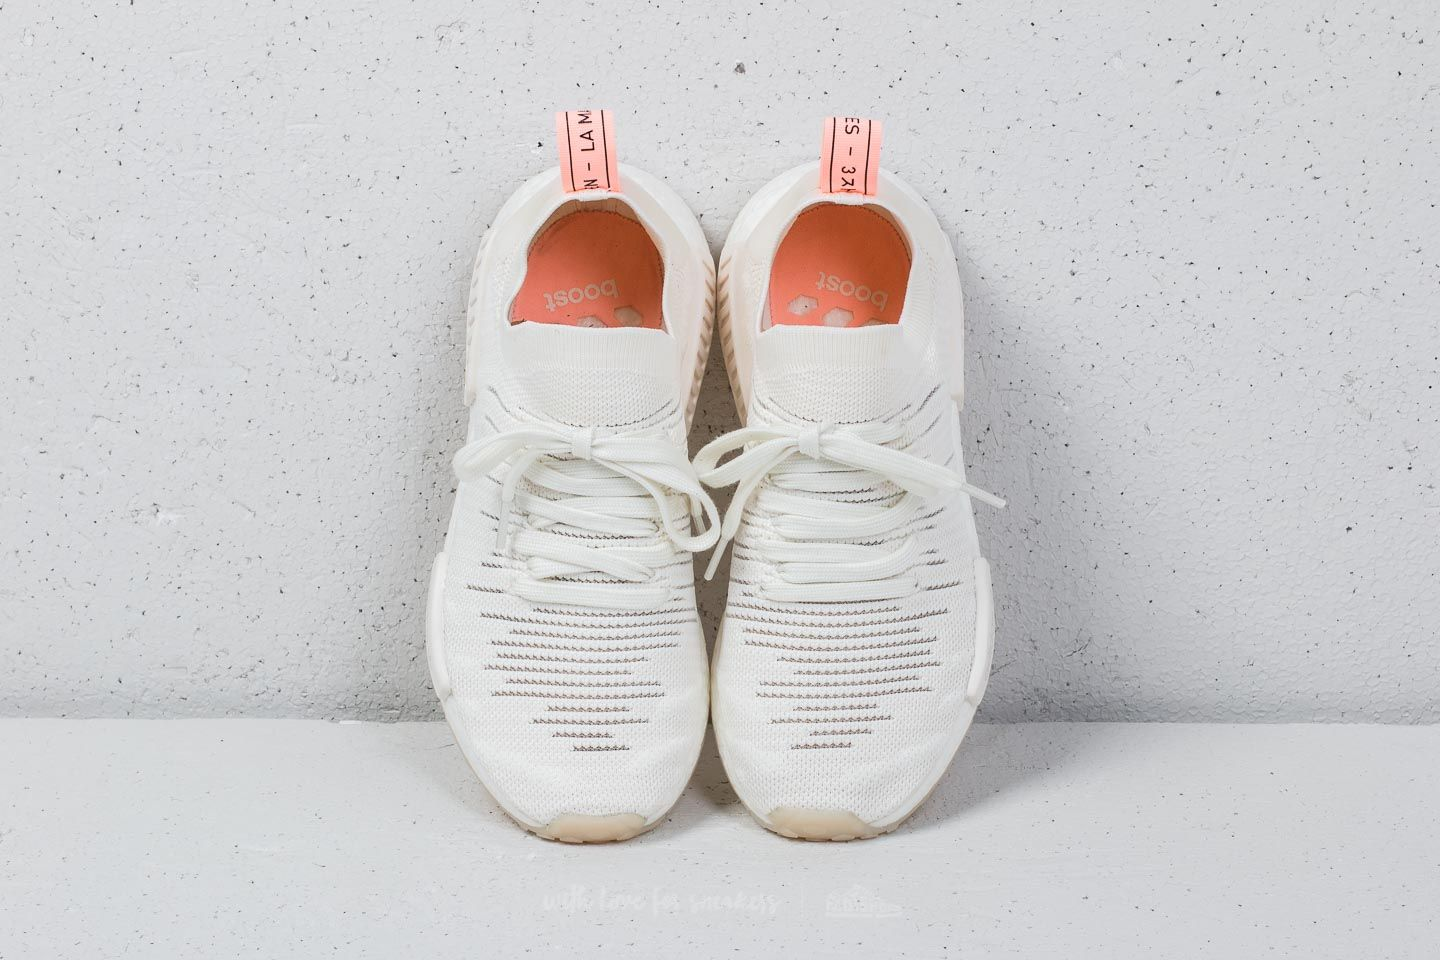 Adidas Nmd R1 Stlt Primeknit W Cloud White Cloud White Clear